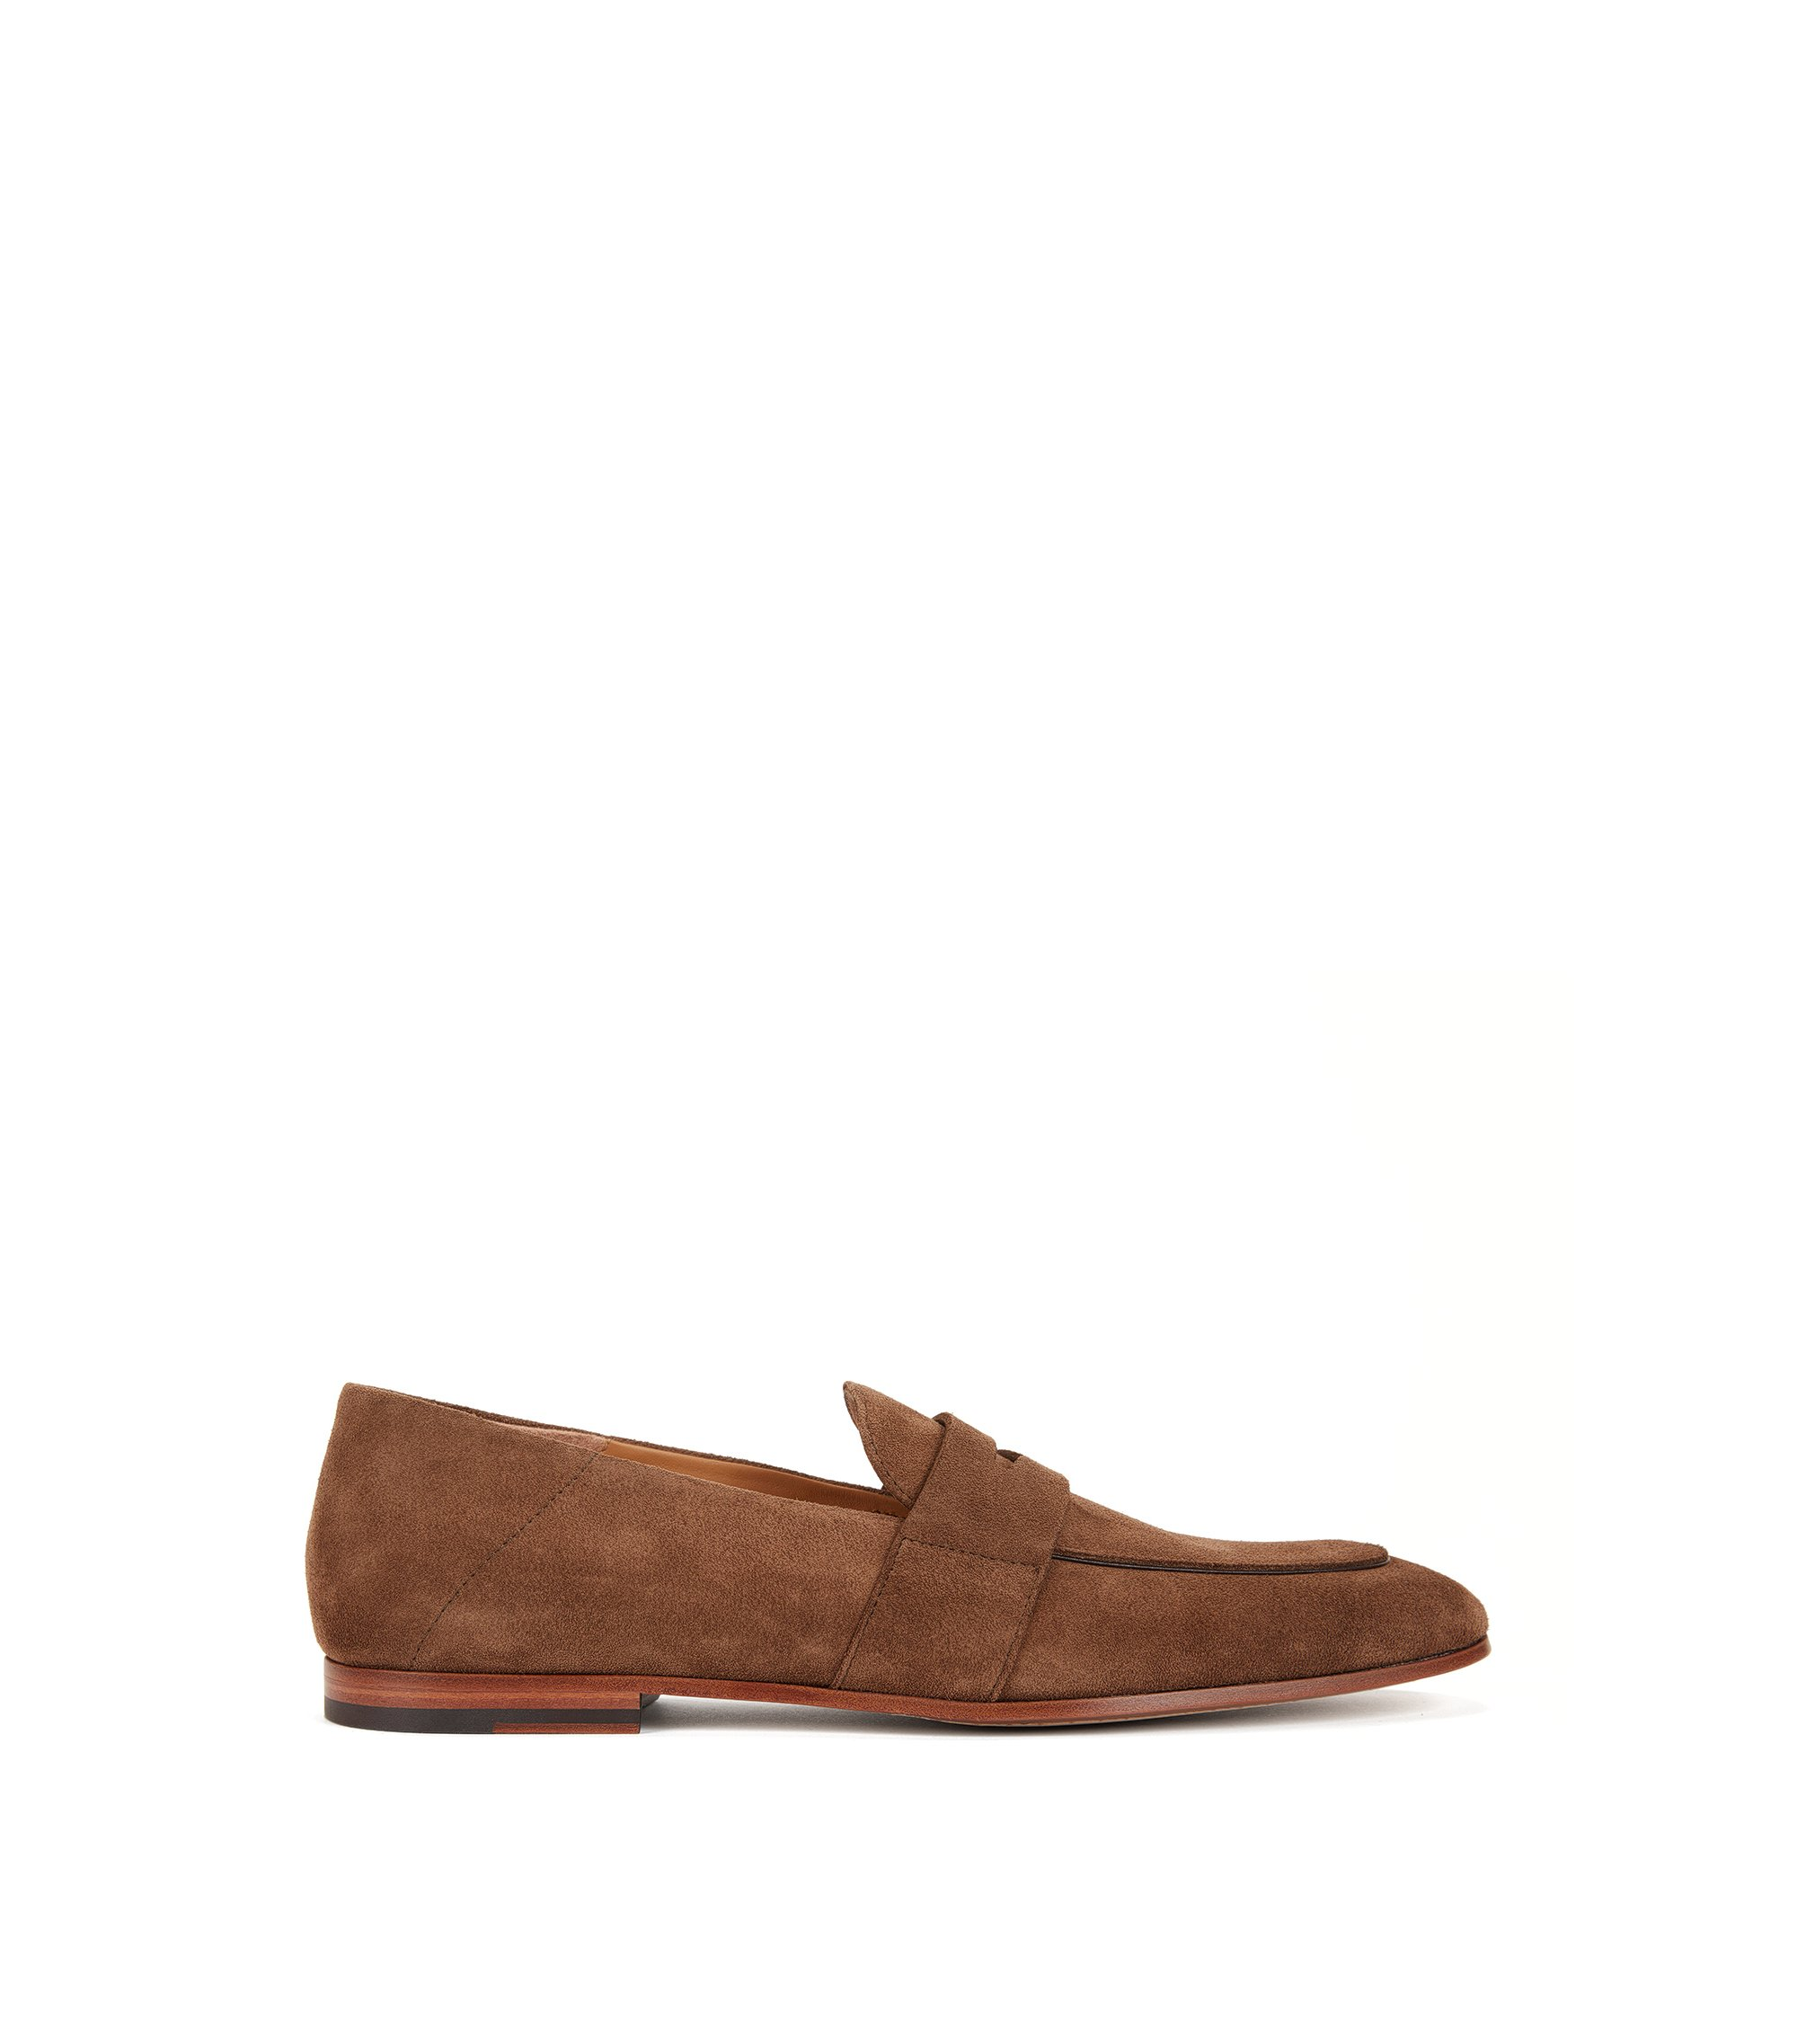 Suede Penny Loafer | Safari Loaf , Khaki